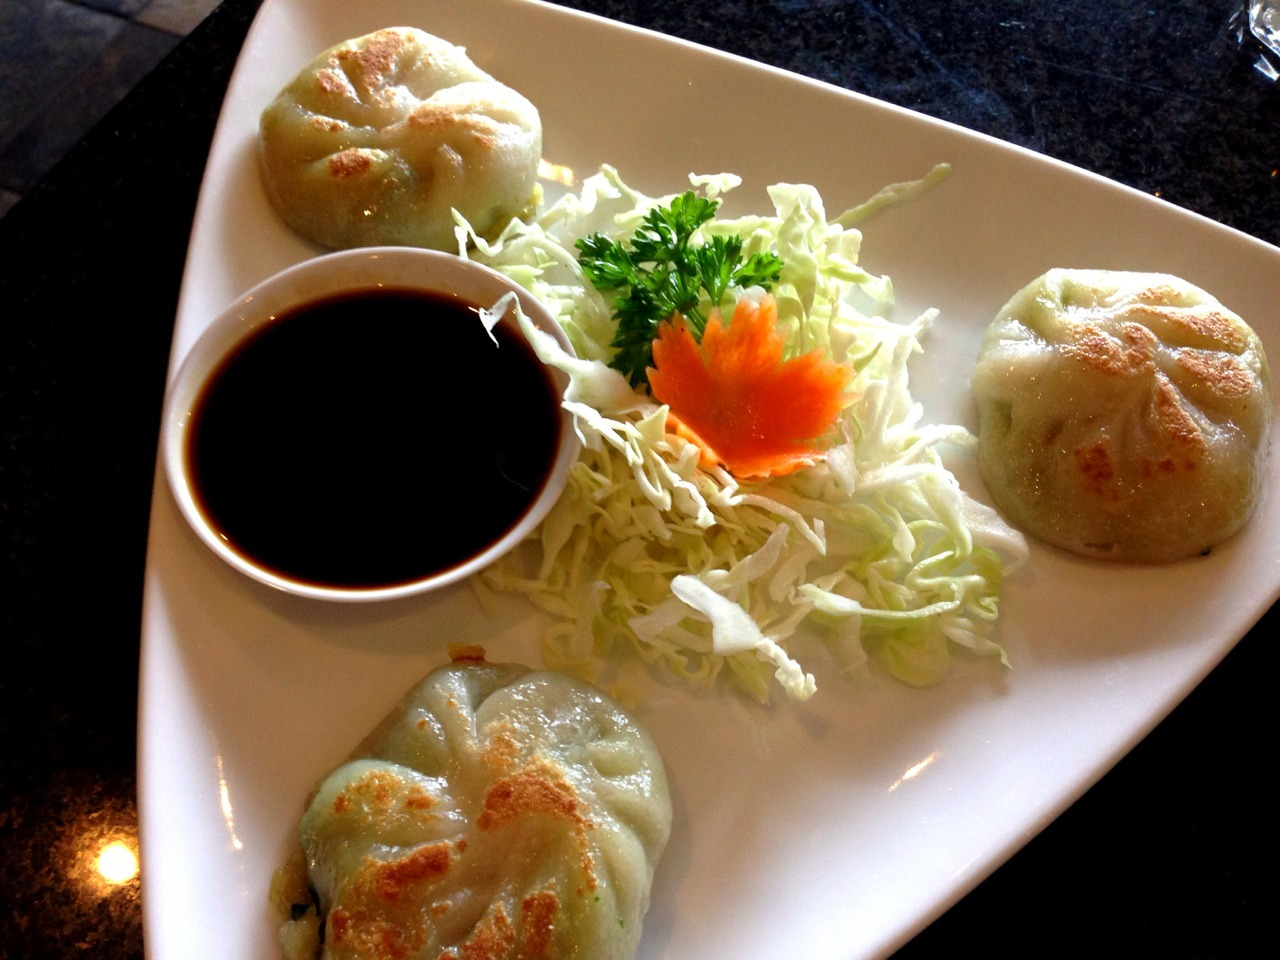 Decent chive dumplings from Siam Thai in Park Ridge. -Gastrodamus